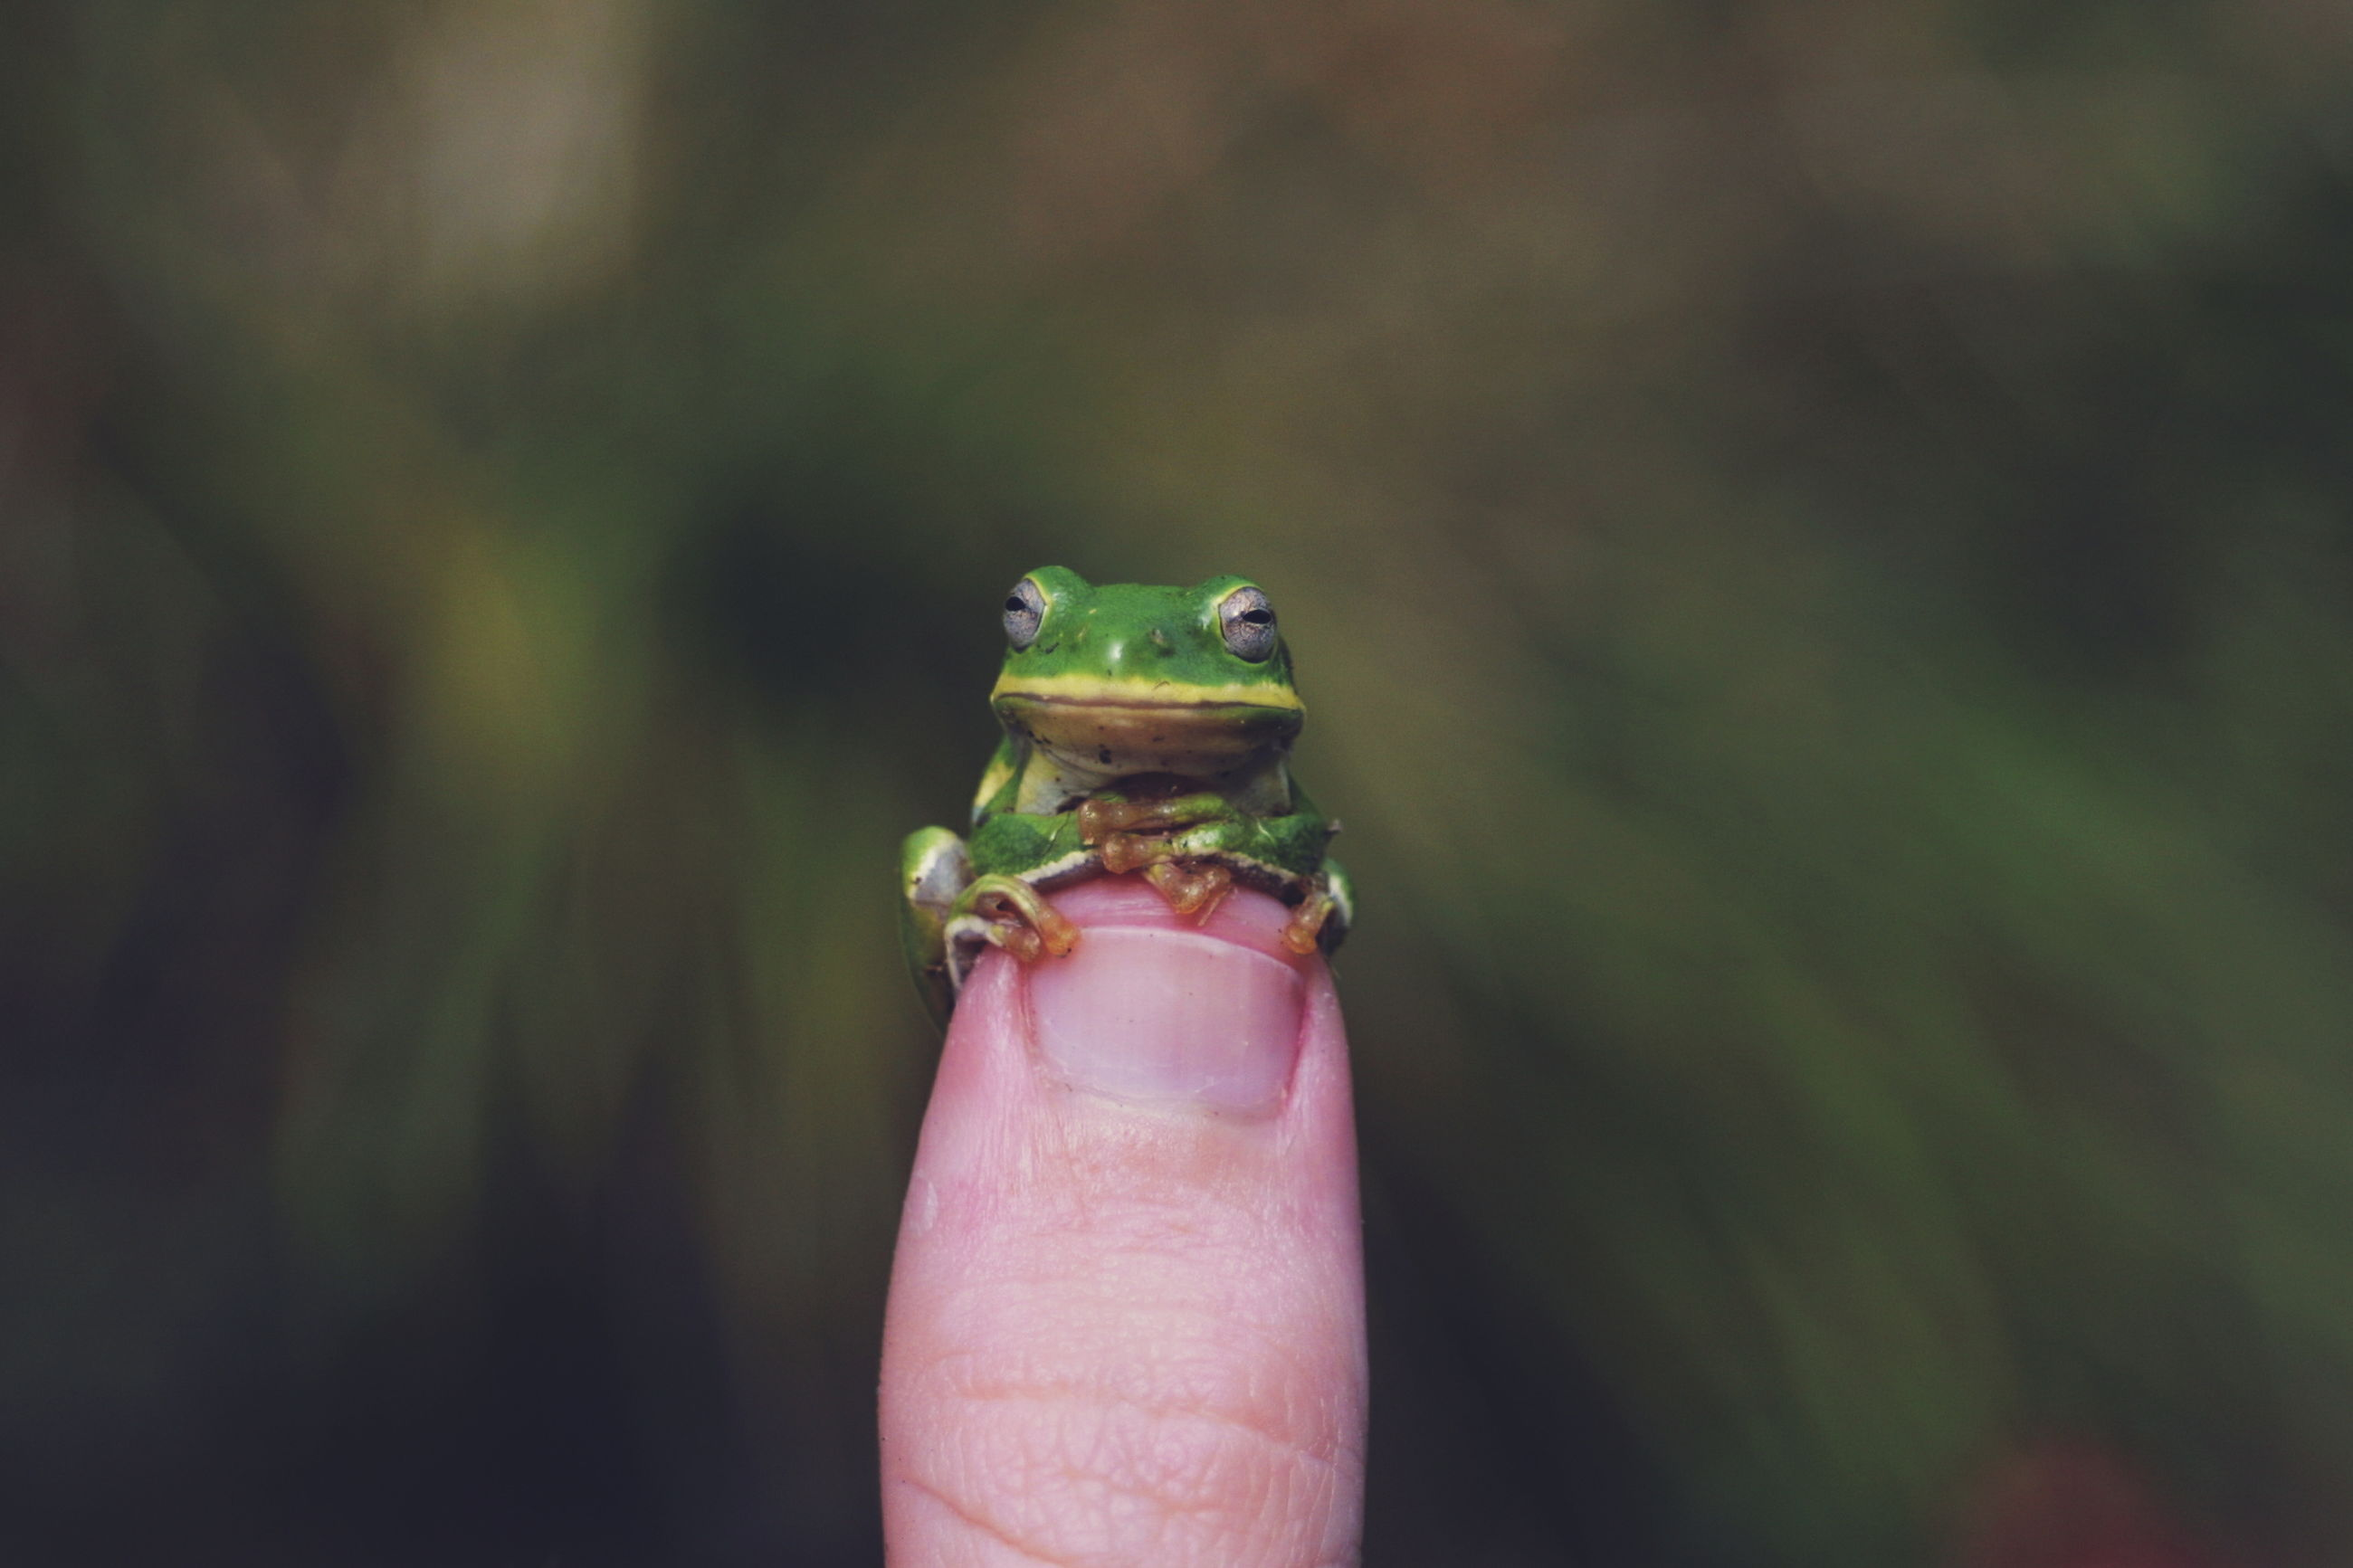 Close-up of small frog on human finger